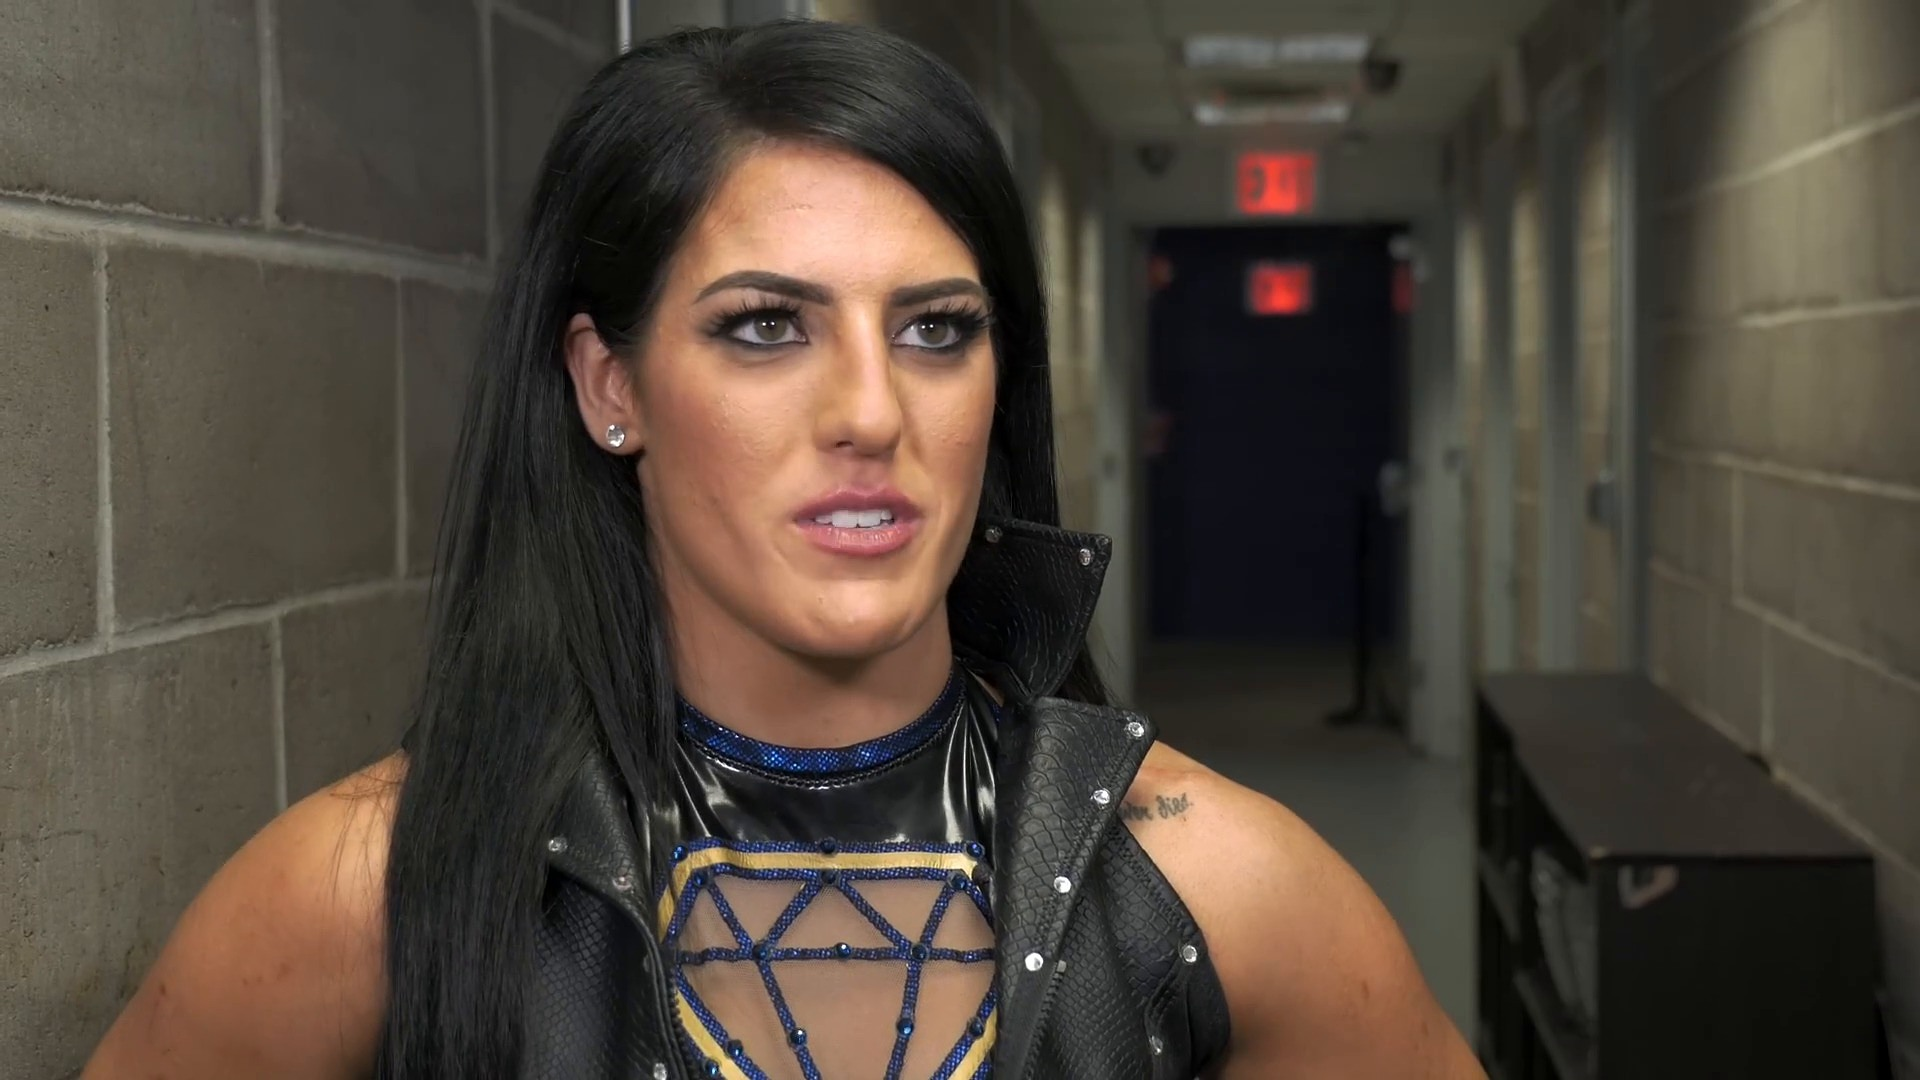 Tessa Blanchard Shares Highlights of her Pre-IMPACT Career